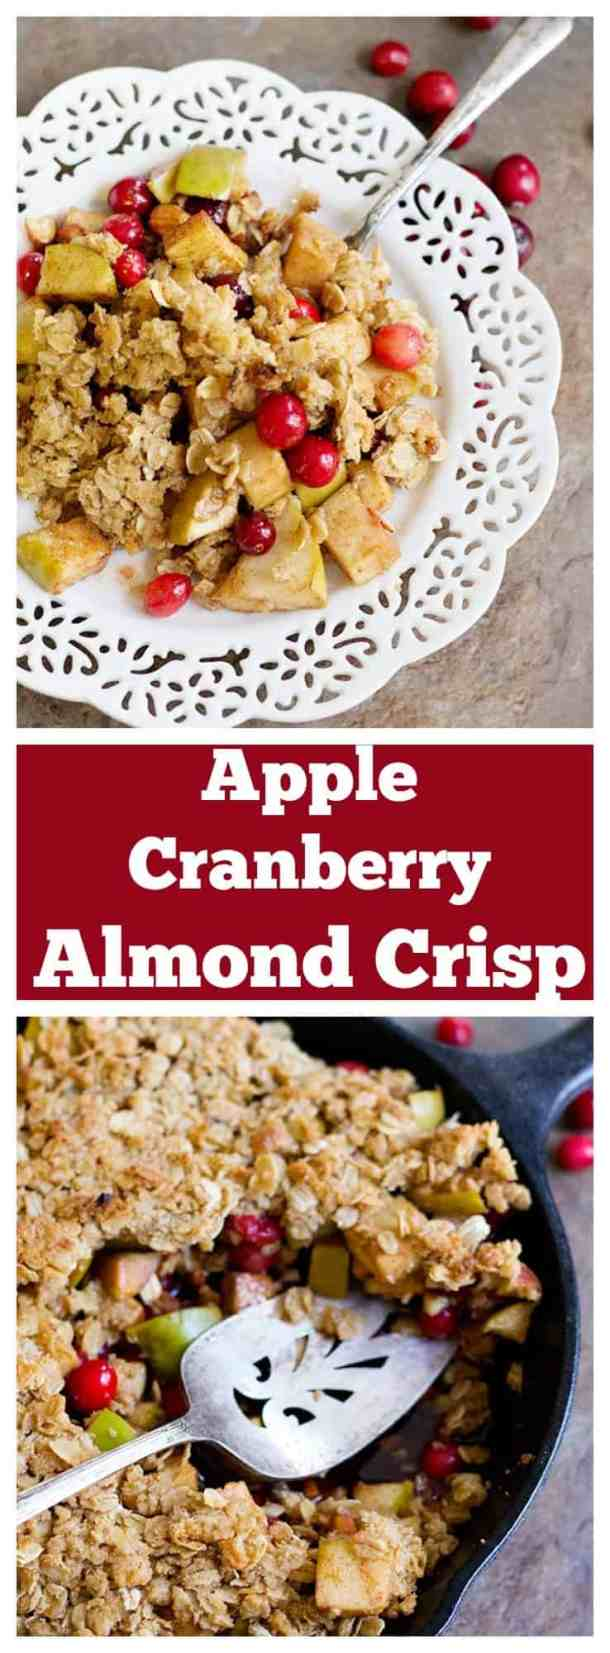 Apple Cranberry Almond Crisp is great for chill evenings. Tart apples and juicy cranberries bring together the perfect texture and flavor. This dish gets better with every bite!